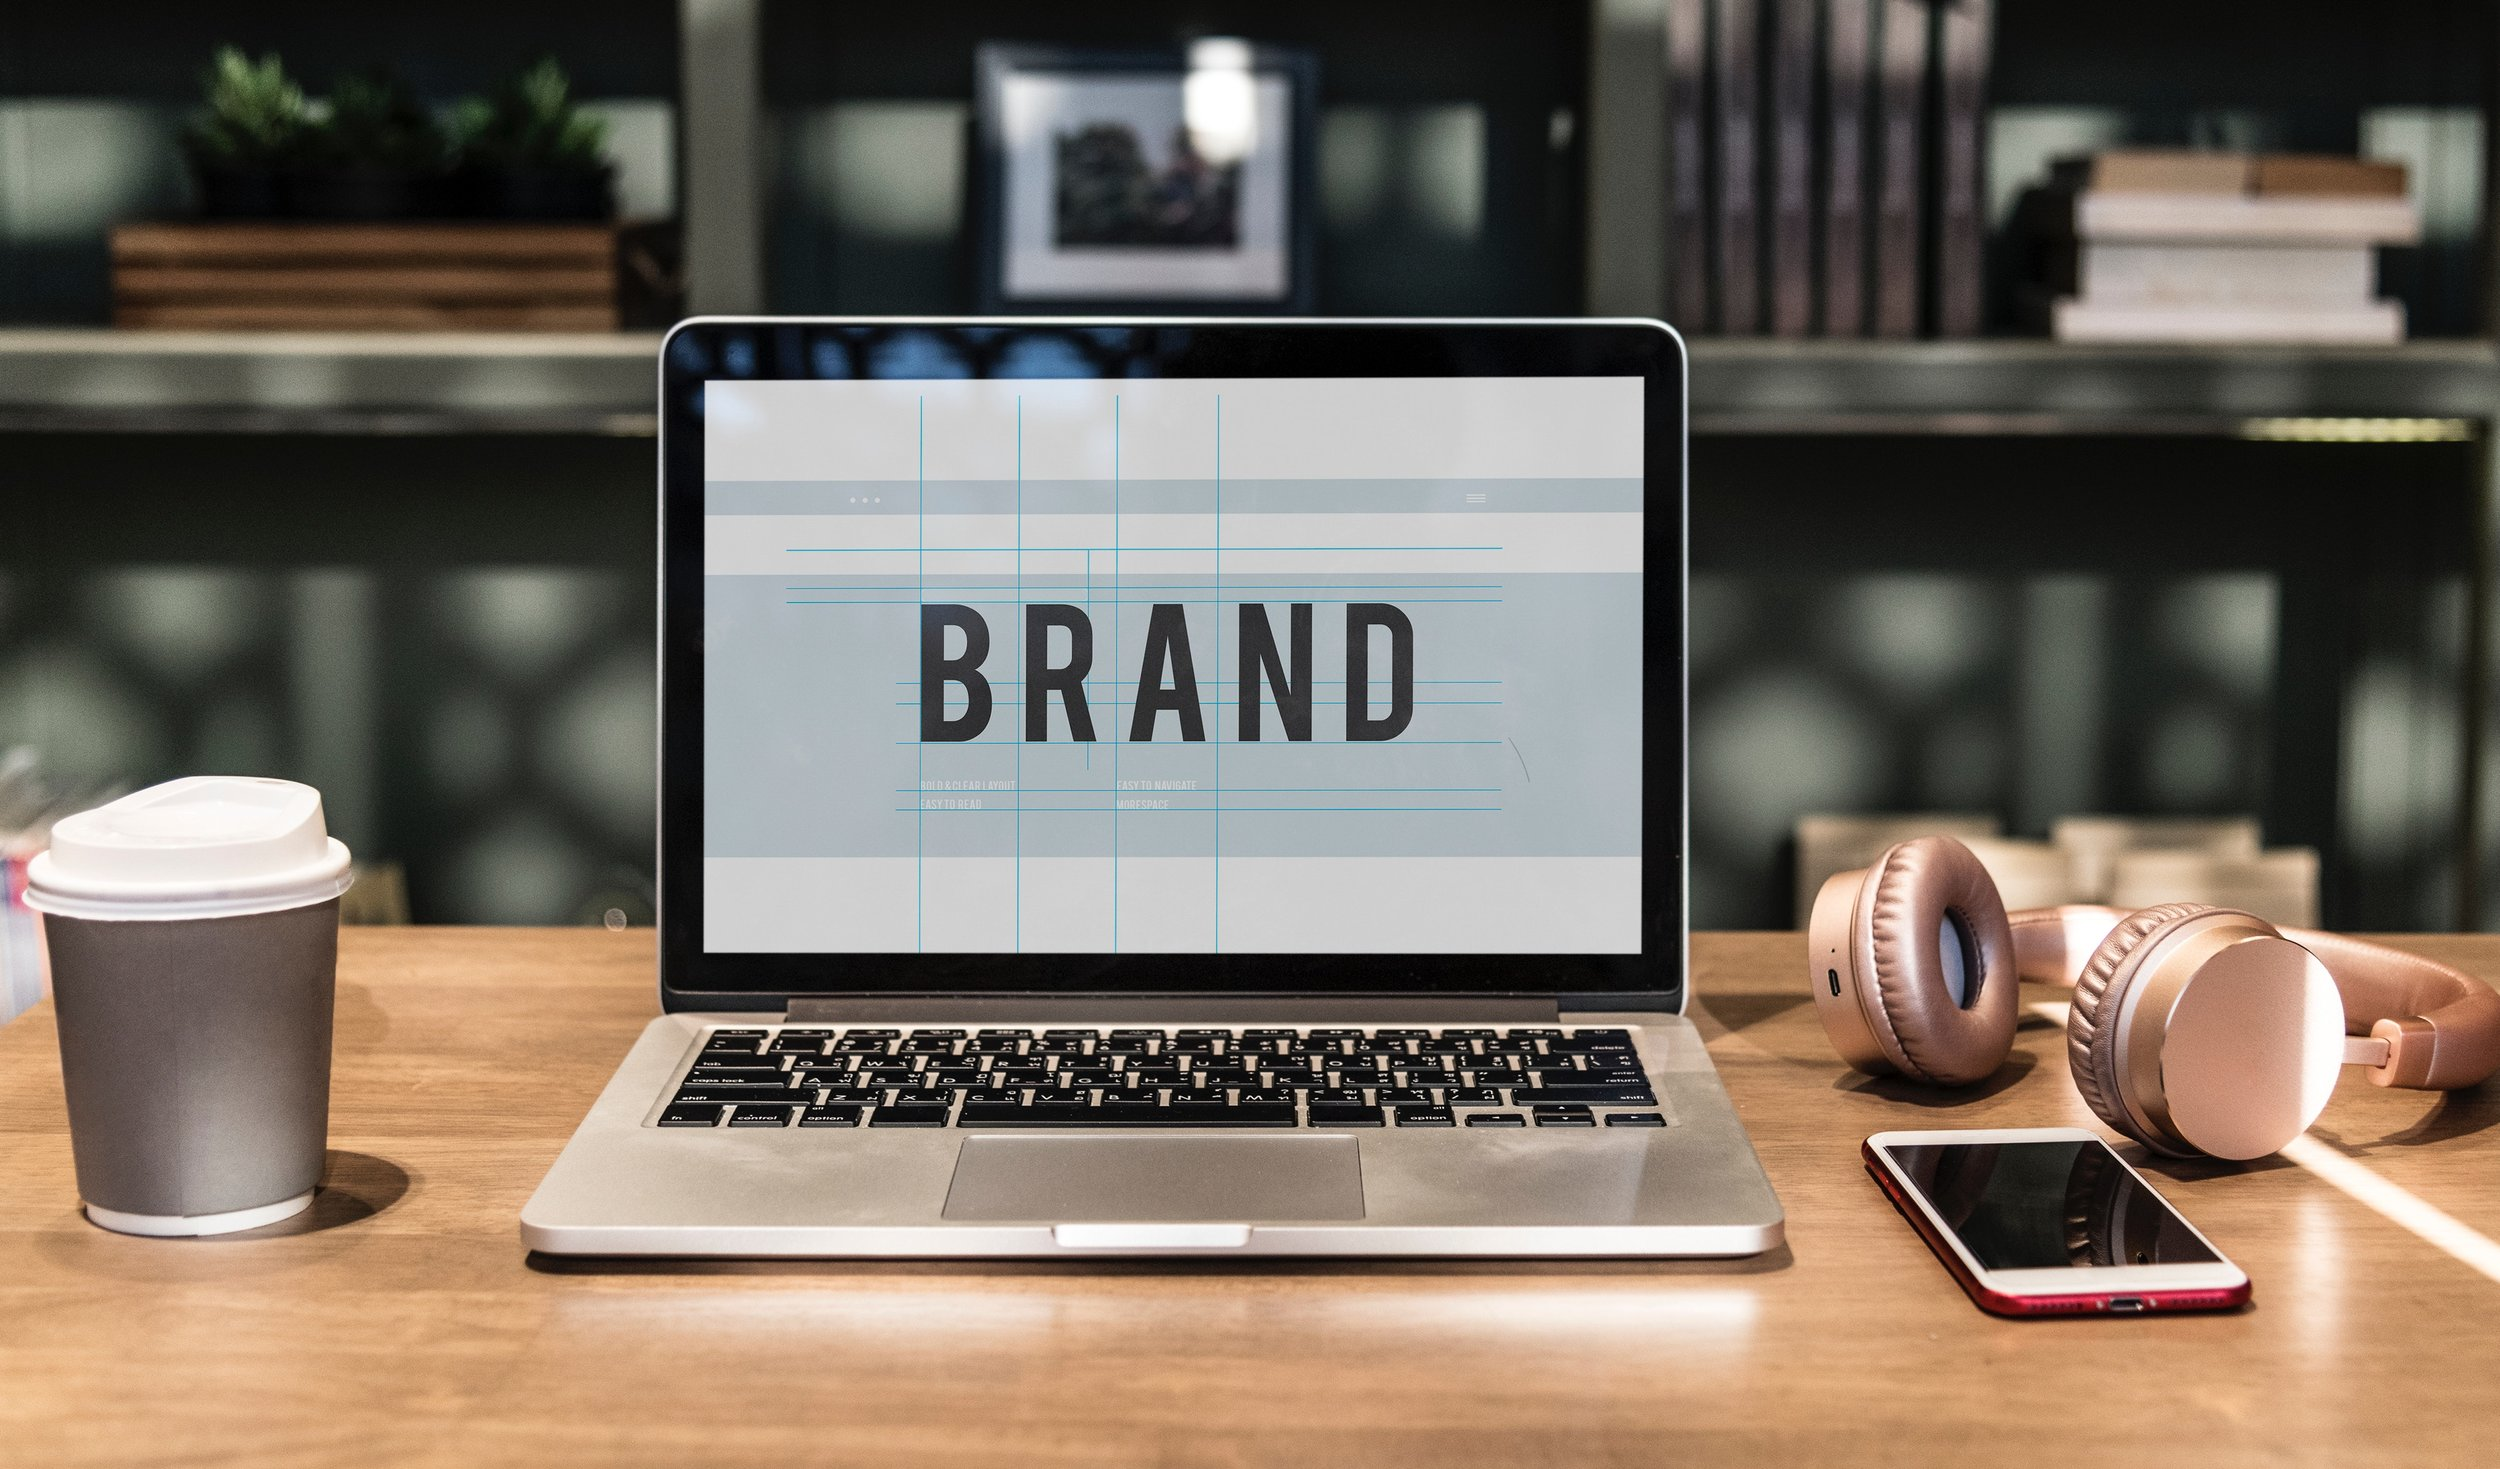 - BrandingWhether you would like us to help your business with branding or need re-branding, our team of creative designers is ready to assist you with anything from creative sessions up to logo creation and content creation.